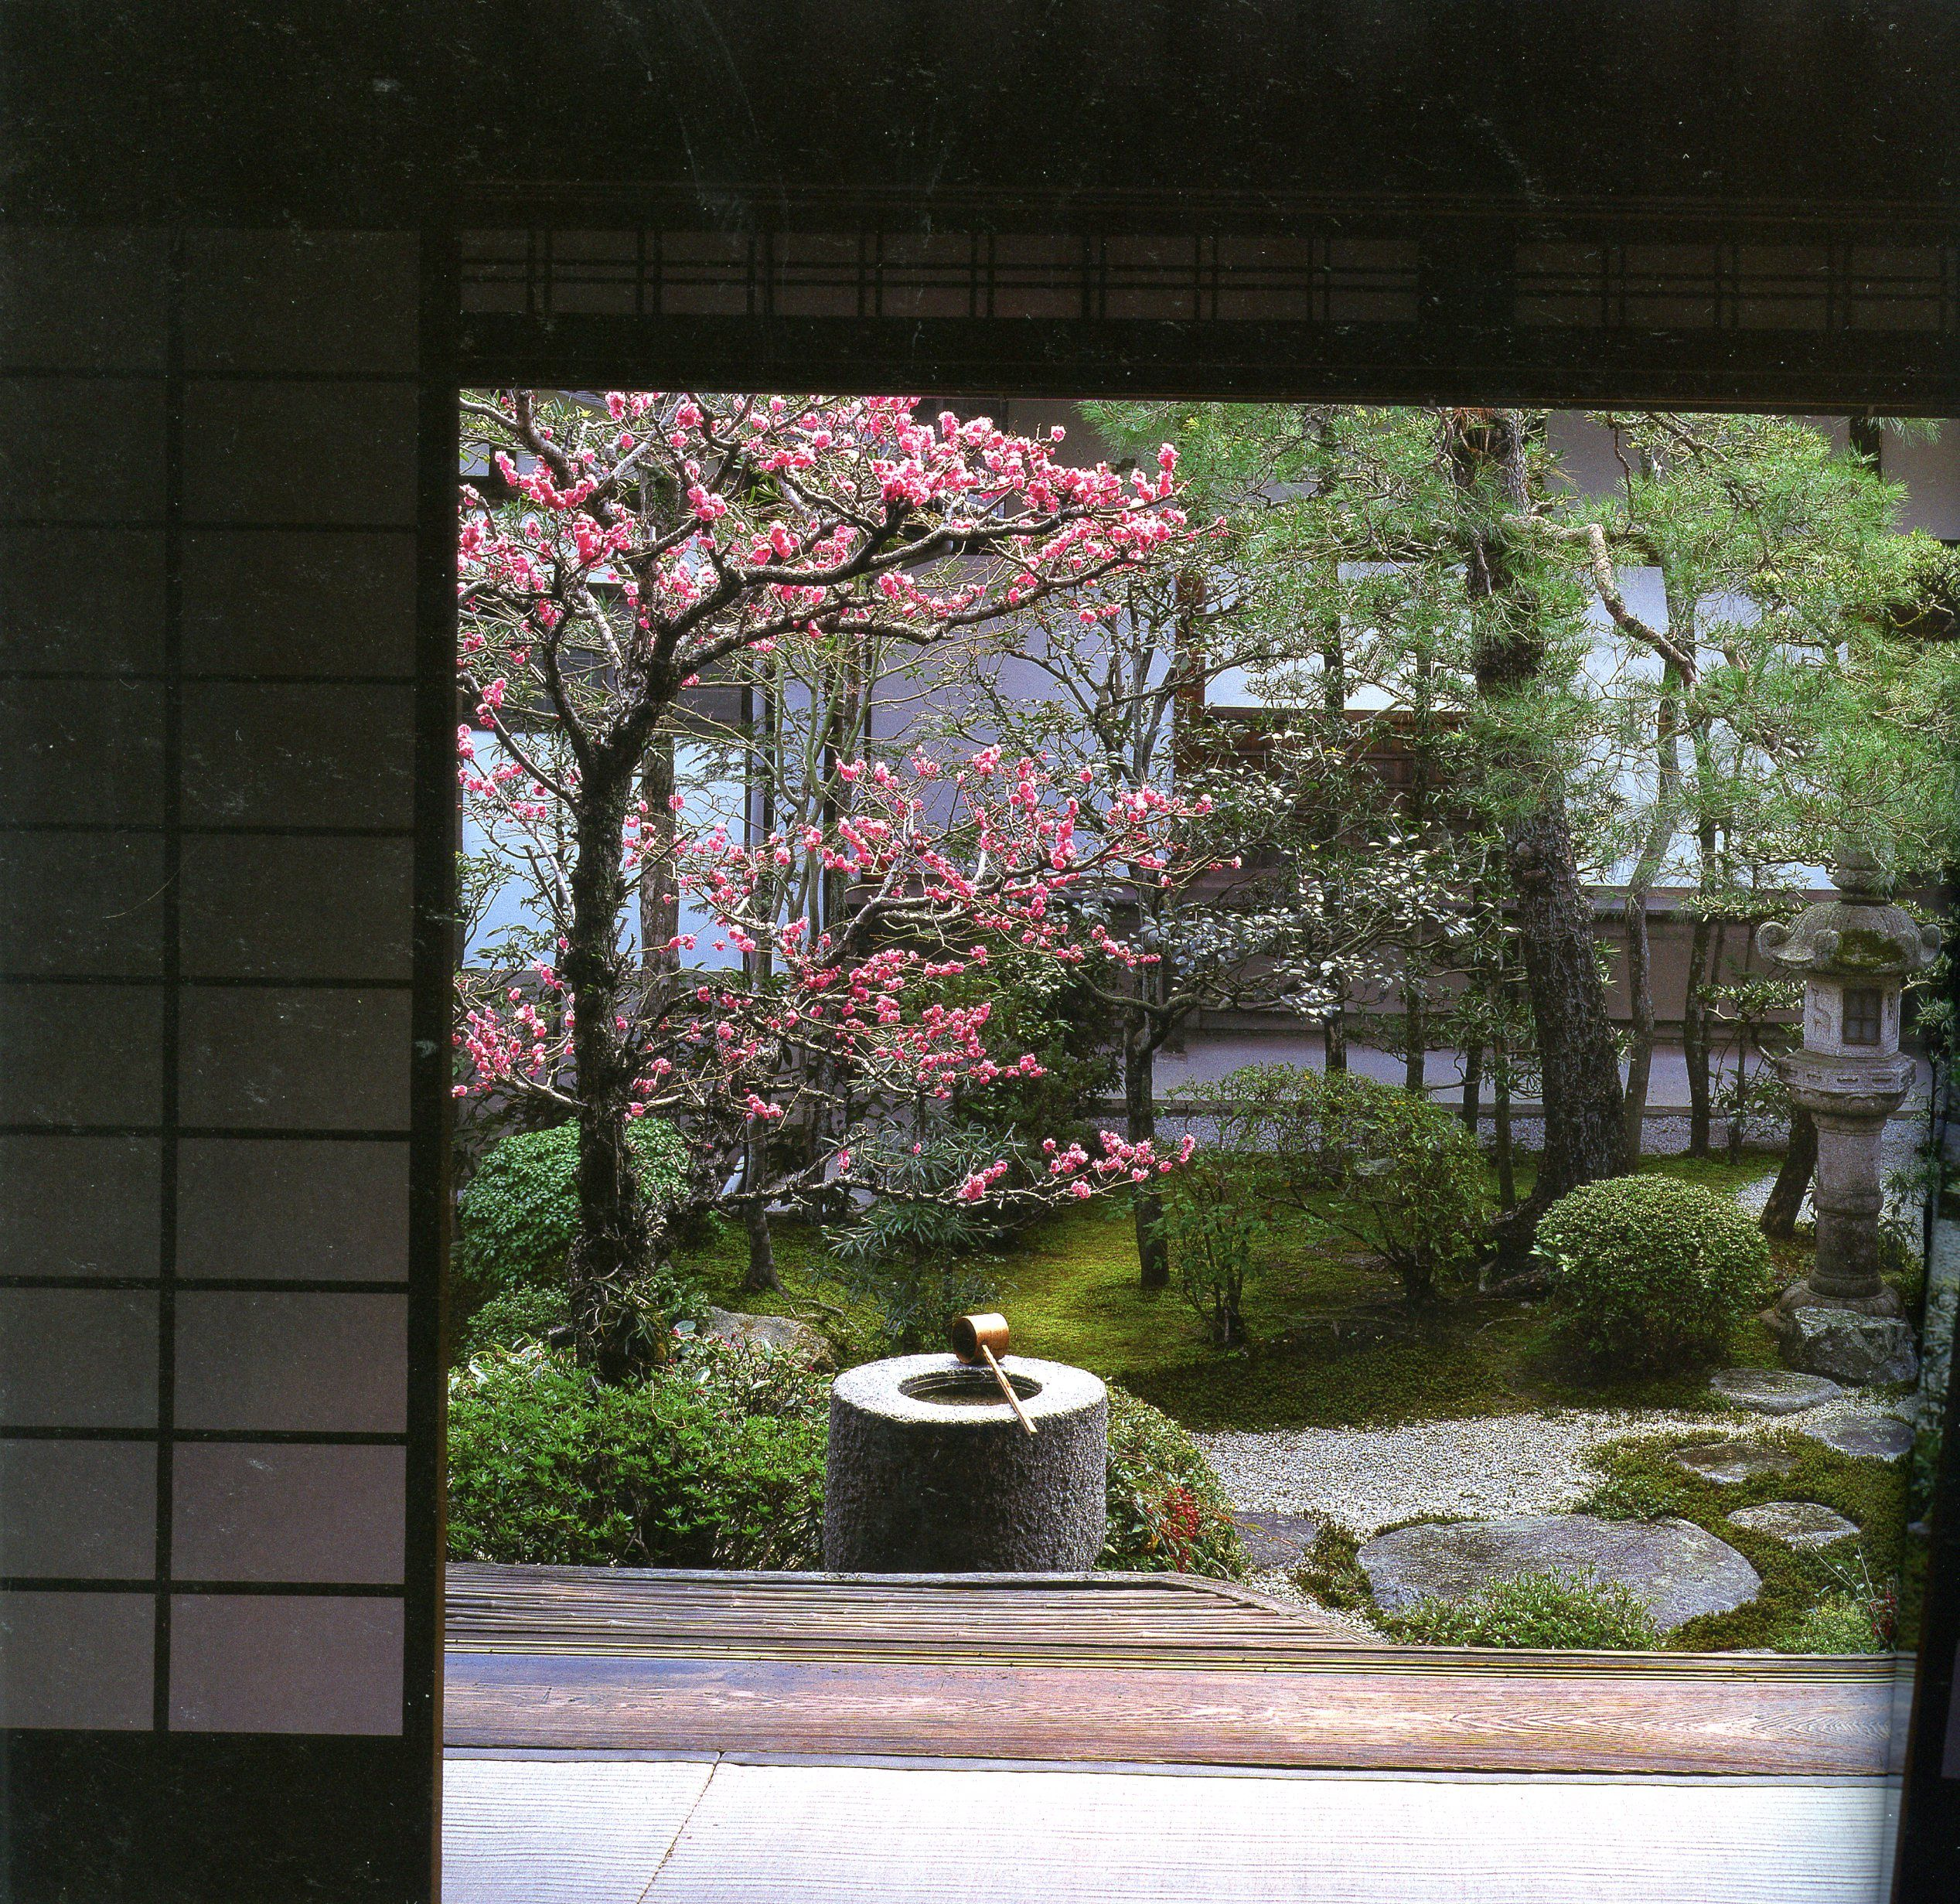 93a10d3d5130817a975adfd552f93330 - Landscapes For Small Spaces Japanese Courtyard Gardens